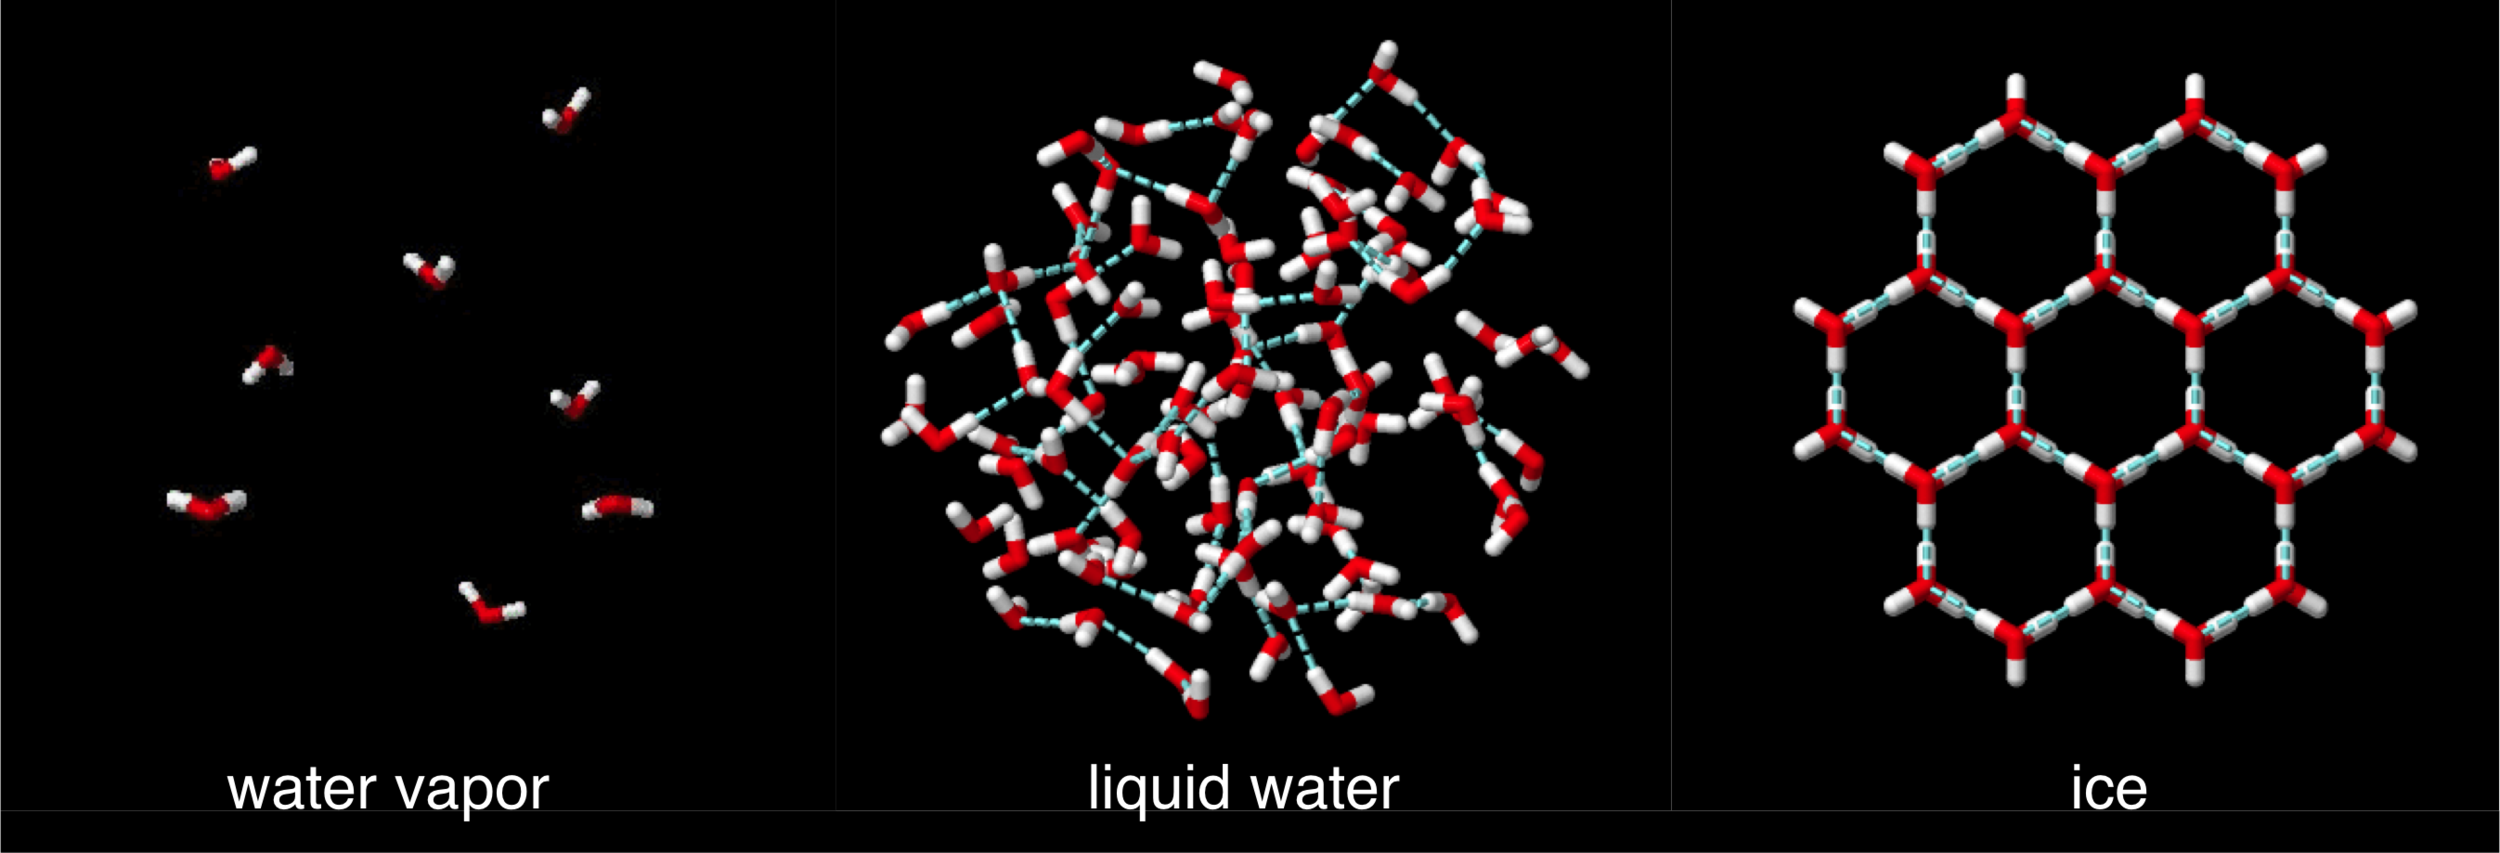 Figure 15 .  States of water.  Water vapor is gaseous water molecules nearly devoid of hydrogen bonding. Water is liquid due to the constant formaing and breaking of hydrogen bonding (blue dashed lines) among neighboring molecules. Ice forms when all potential hydrogen bonds are formed among neighboring molecules. Due to the water bent structure, ice molecules are more spread out relative to liquid water, causing it to be less dense.  Media source .